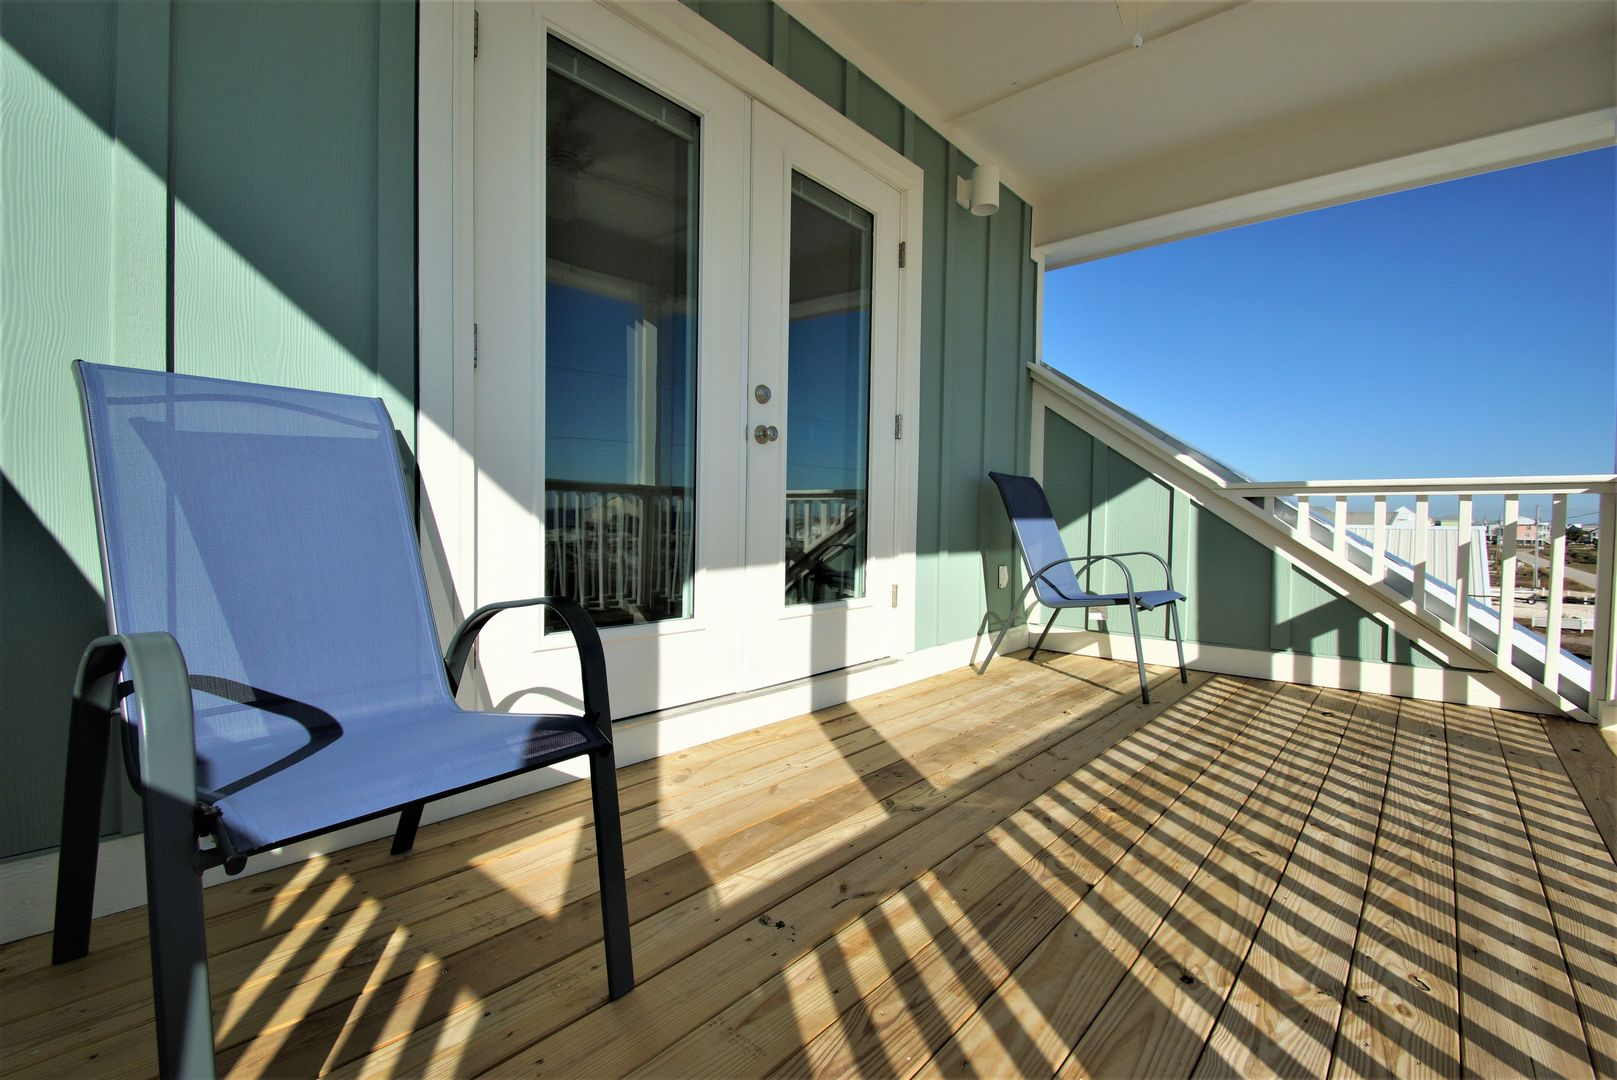 Private balcony from the master bedroom of this Vacation Rental in Gulf Shores AL.